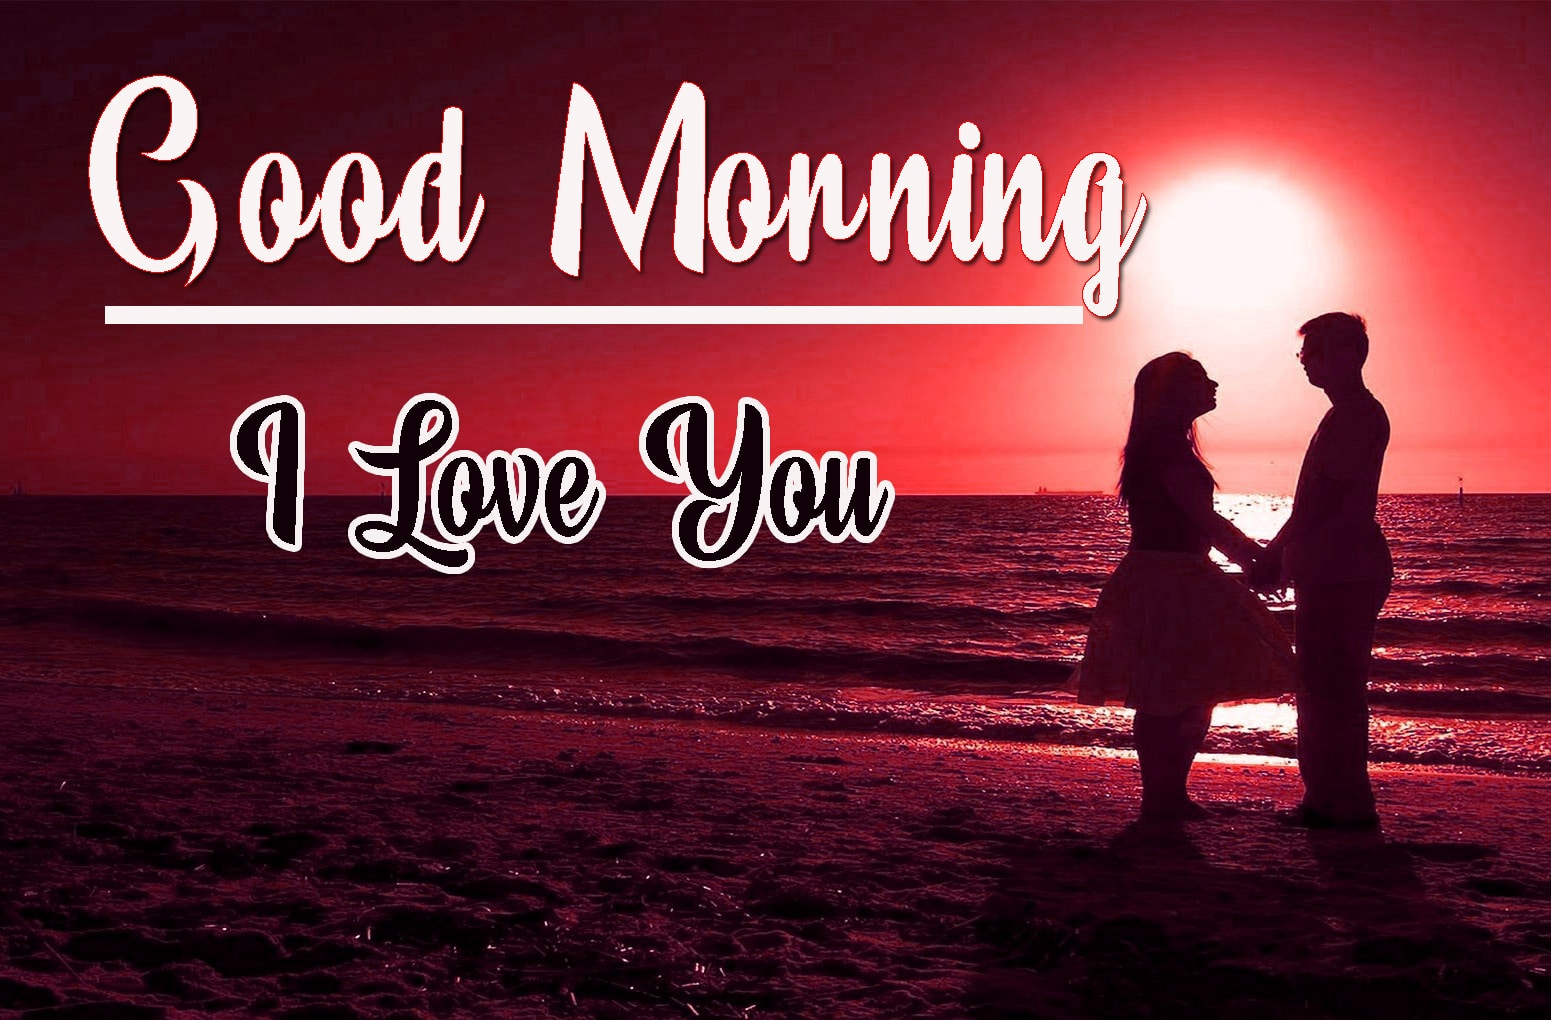 Good Morning Images Wallpaper Download Desi Love Couple 14